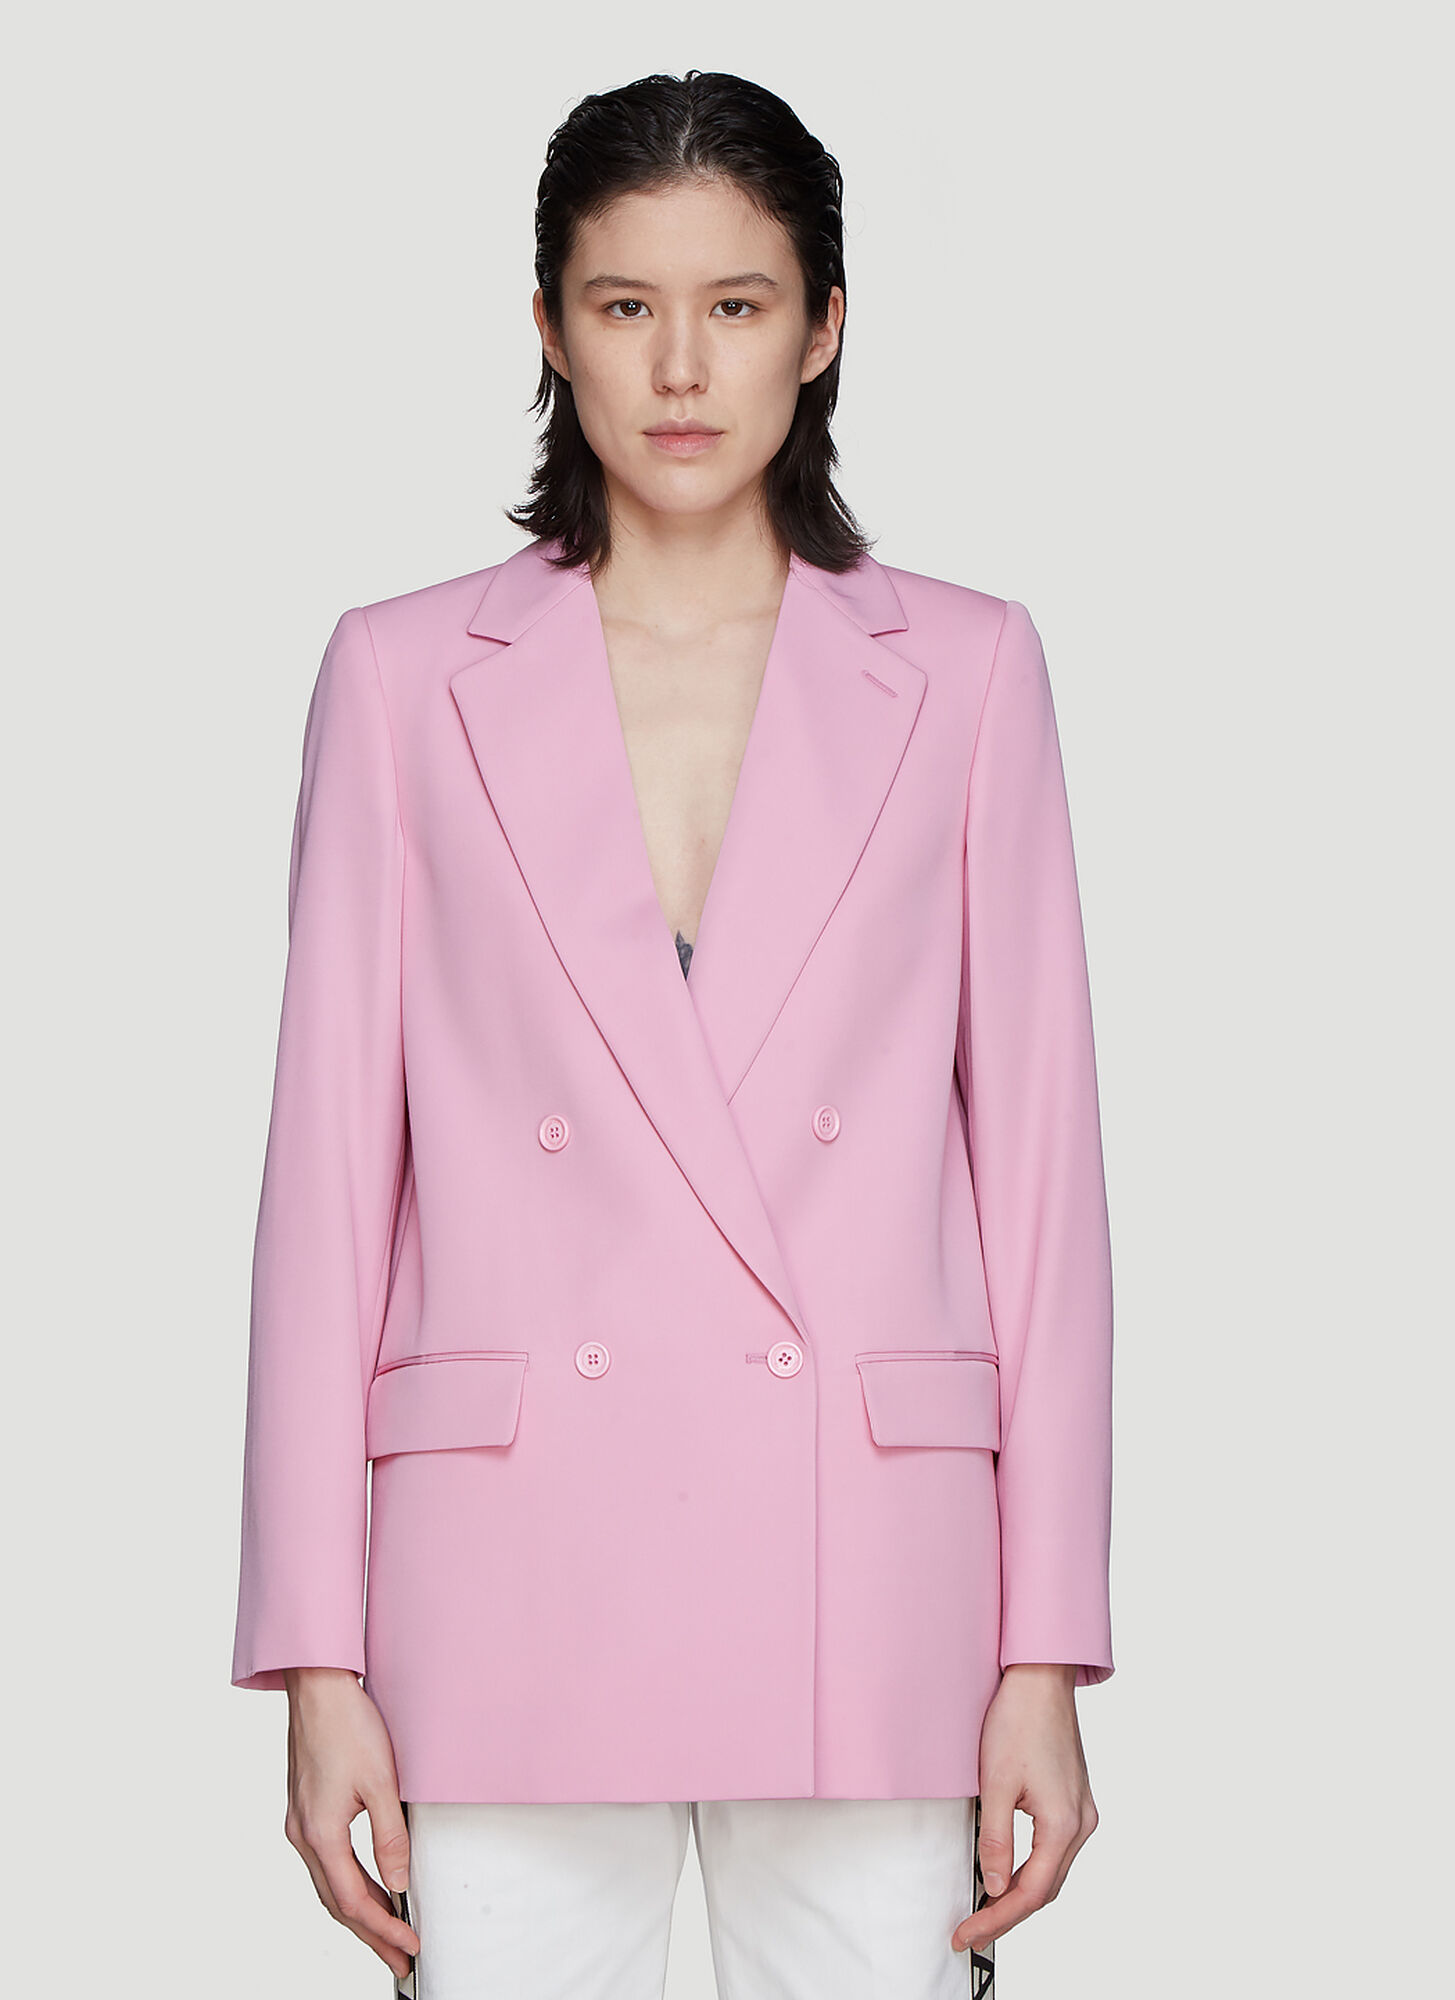 Stella McCartney Double Breasted Jacket in Pink